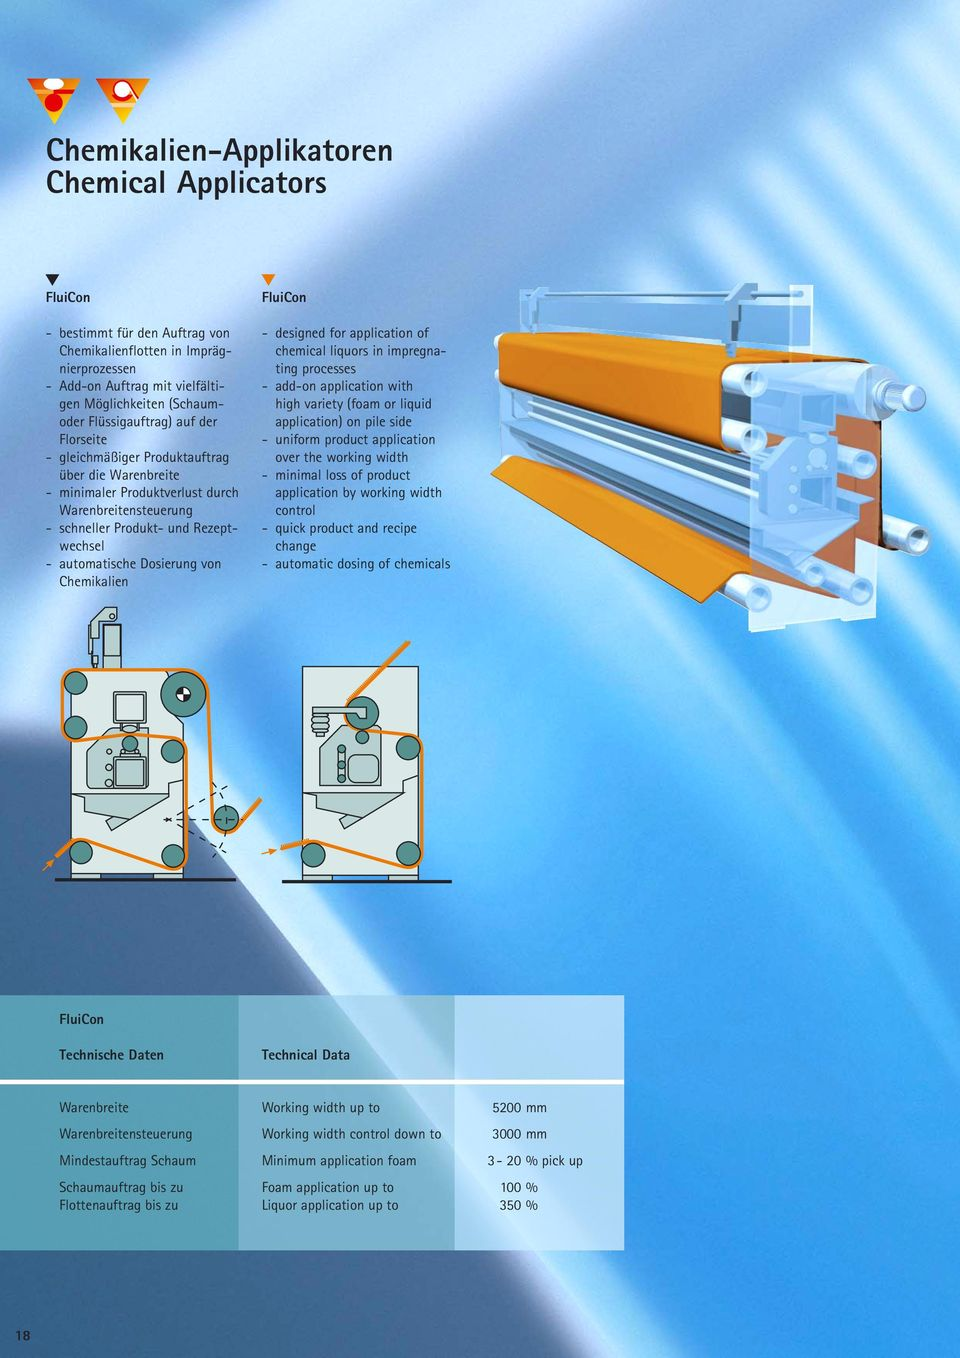 Dosierung von Chemikalien FluiCon - designed for application of chemical liquors in impregnating processes - add-on application with high variety (foam or liquid application) on pile side - uniform